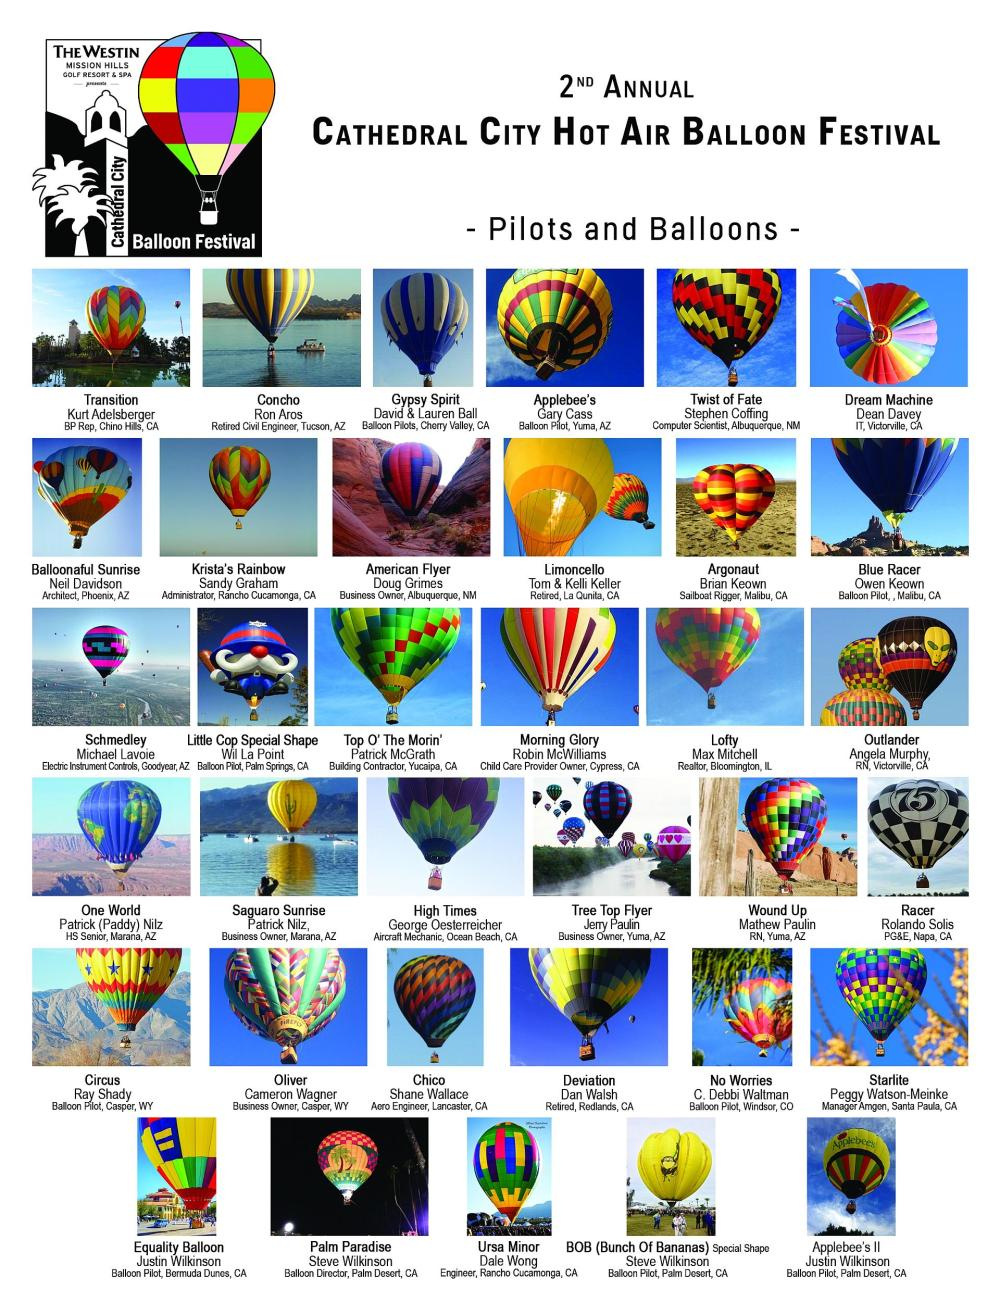 Schedule Balloons to Appear